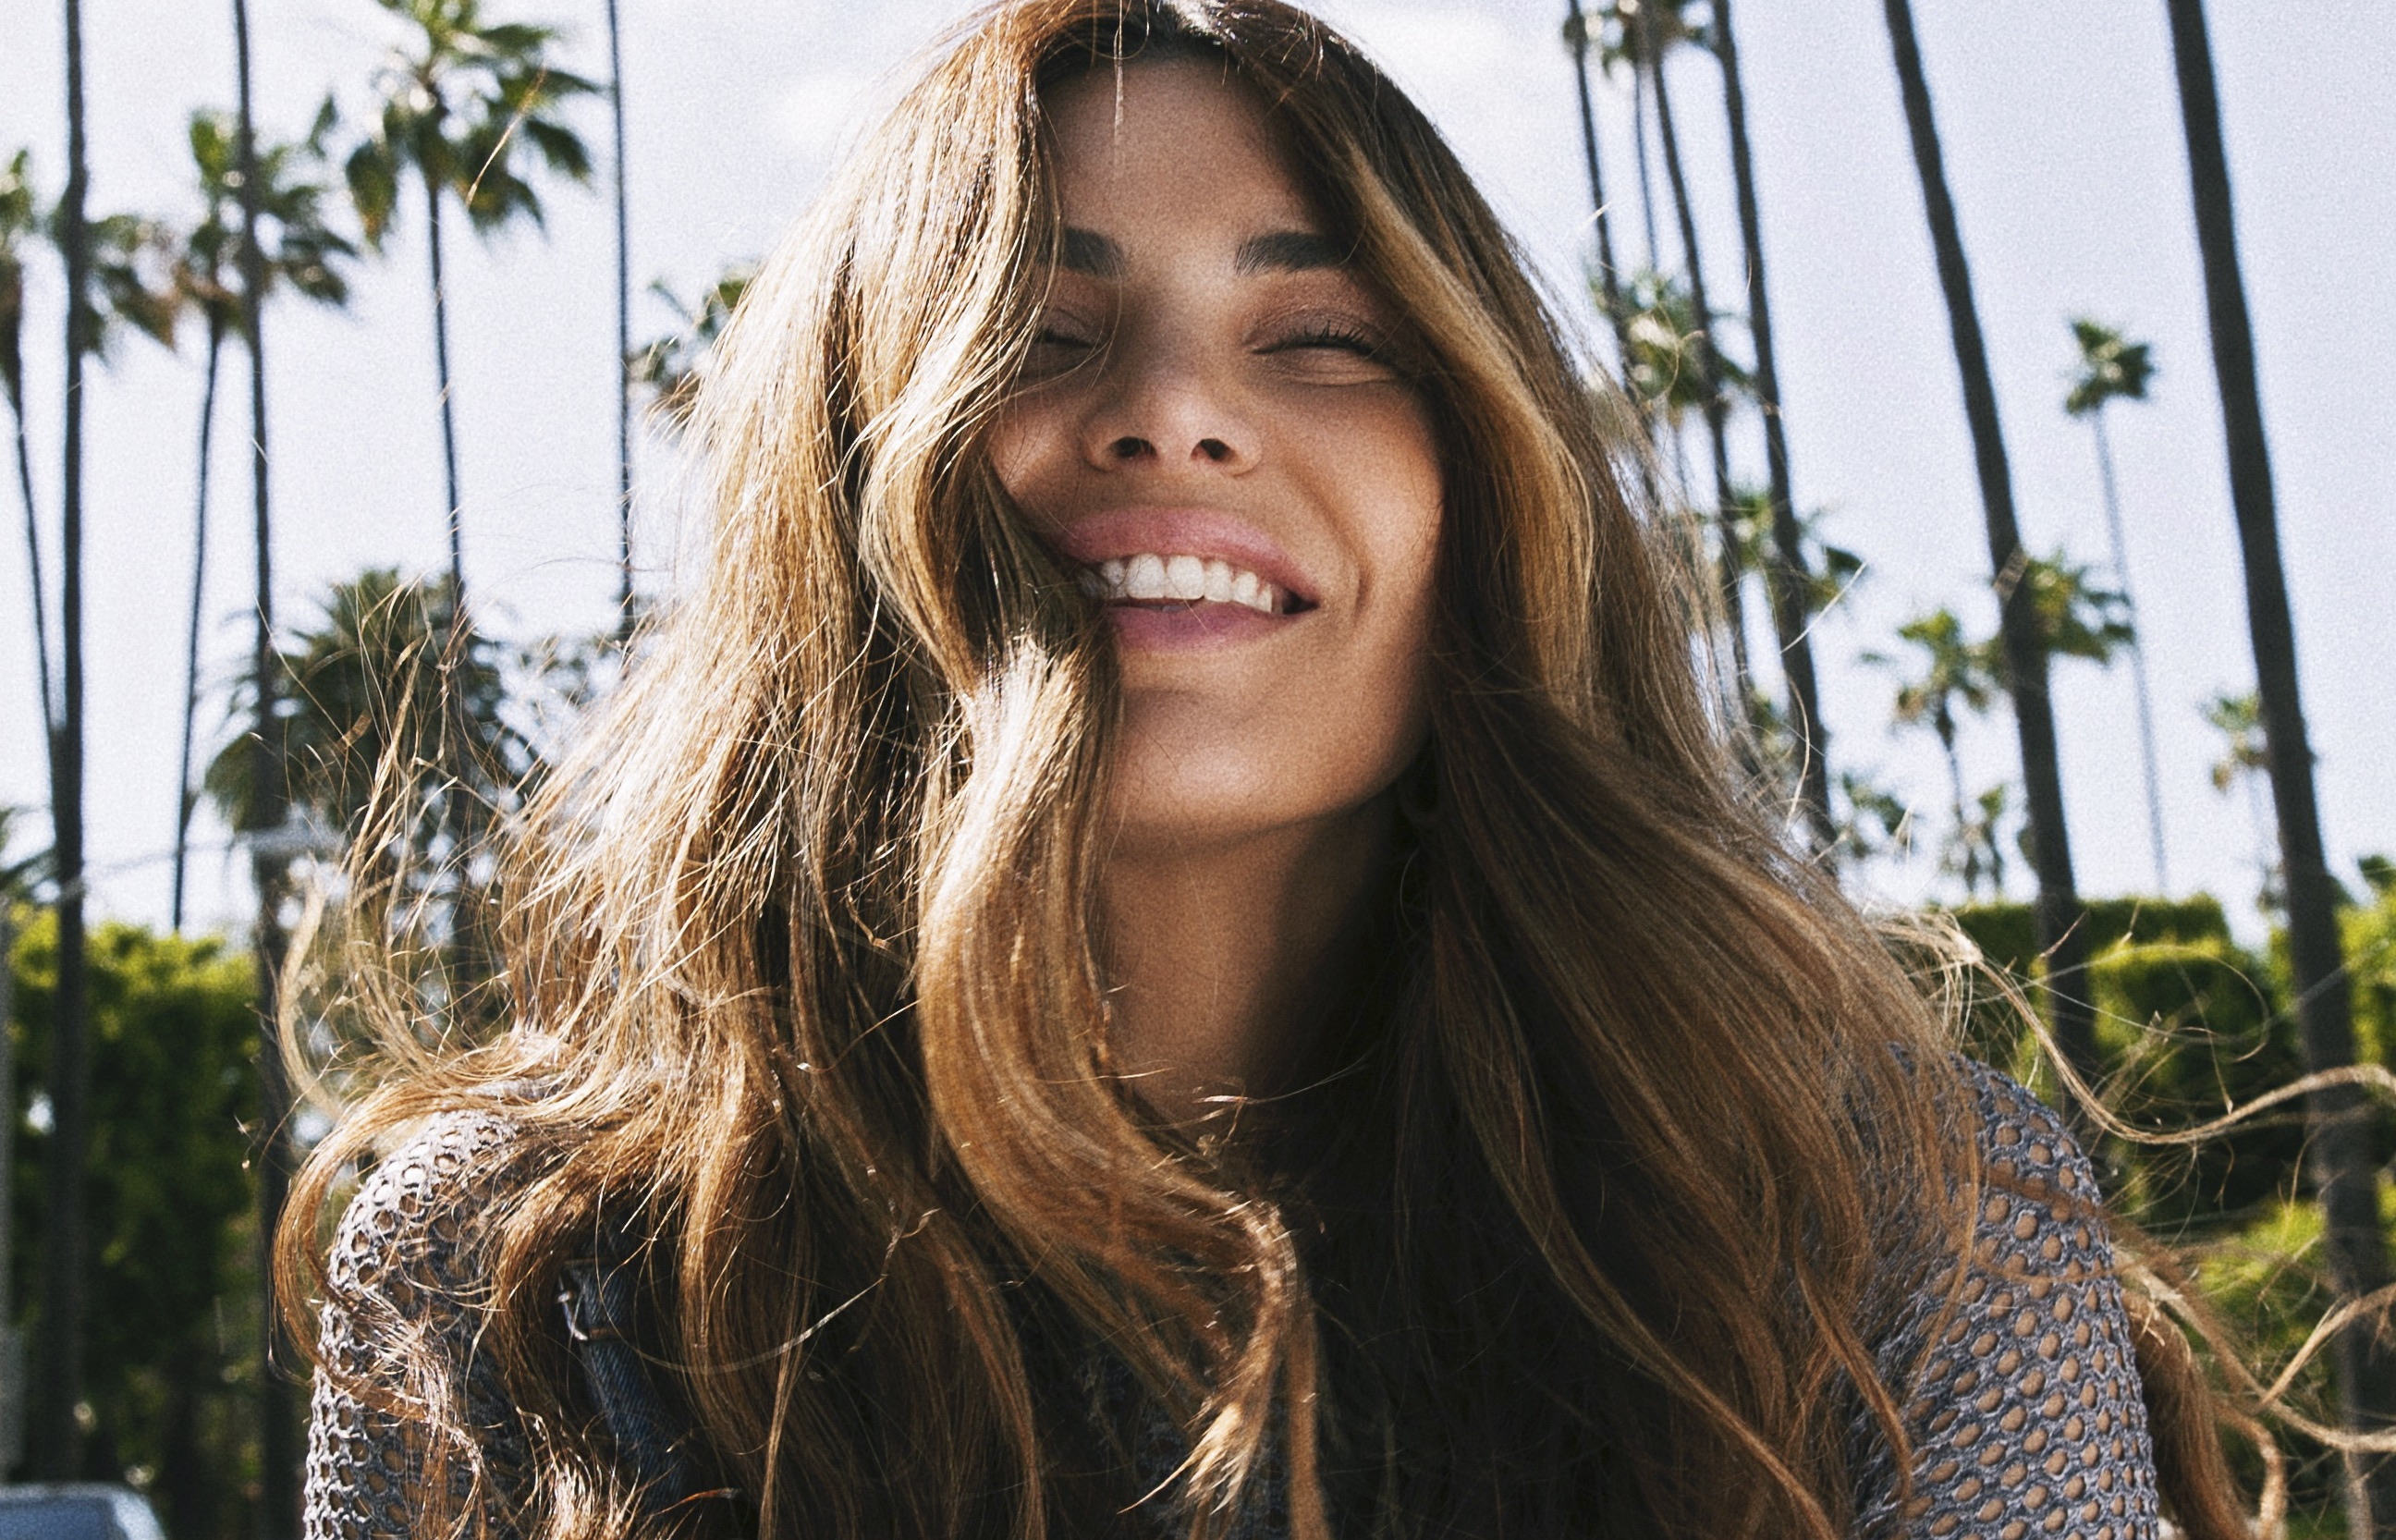 Inside the Fabulous Life of Negin Mirsalehi, an Instagram Influencer Who Makes $20,000 for a Single Post